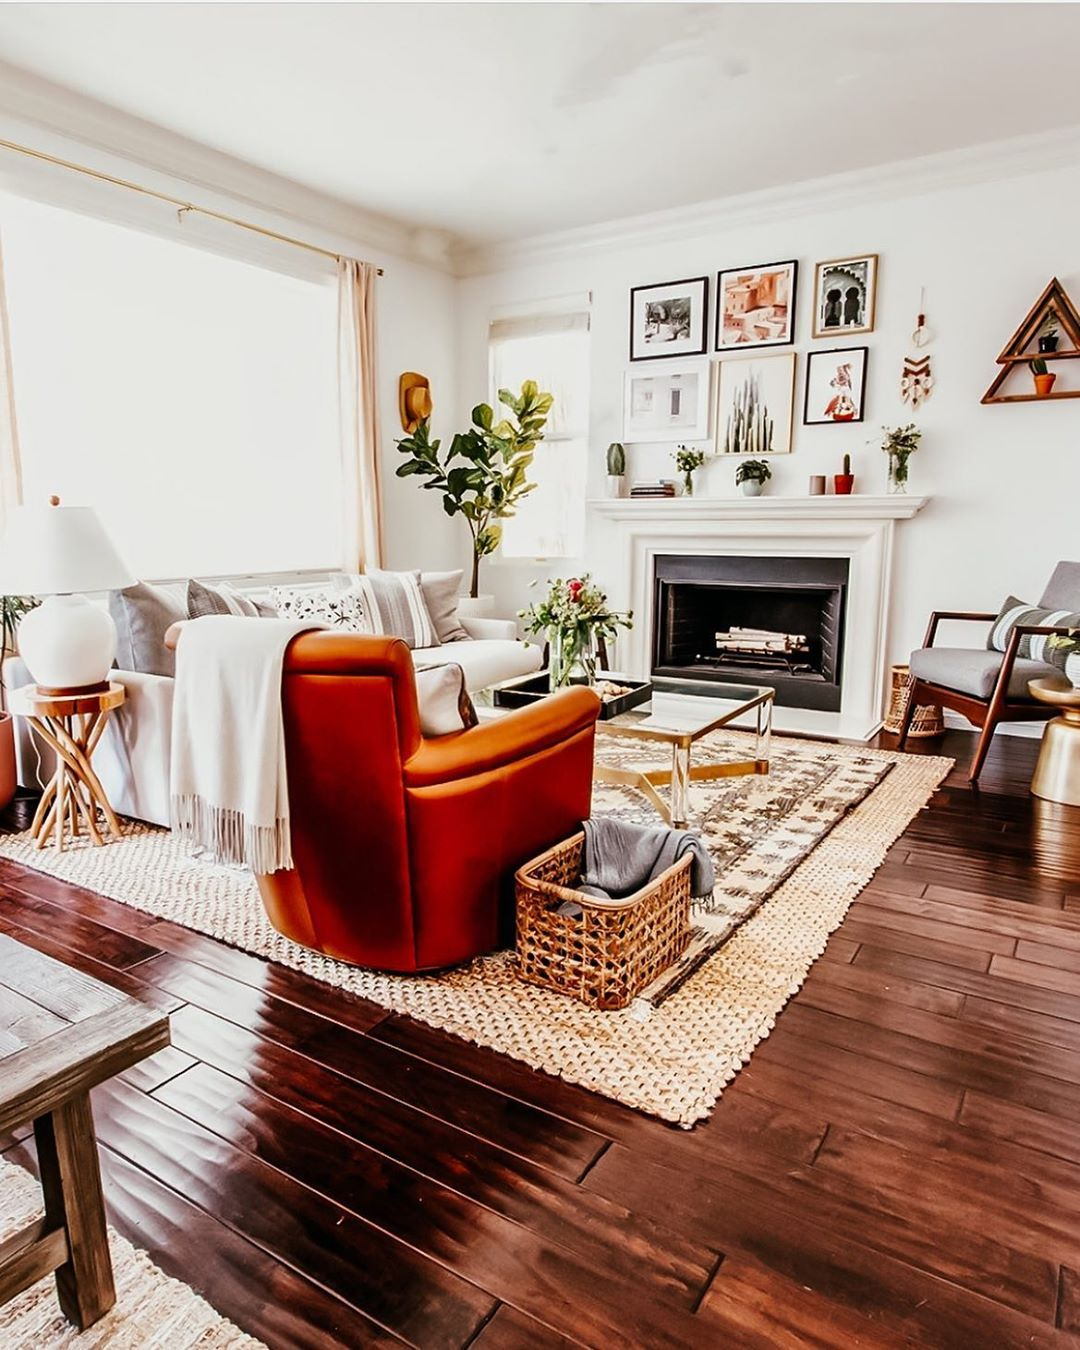 **LAST CHANCE** Take one last look at our old family room ... on Fireplace Casual Living id=36124